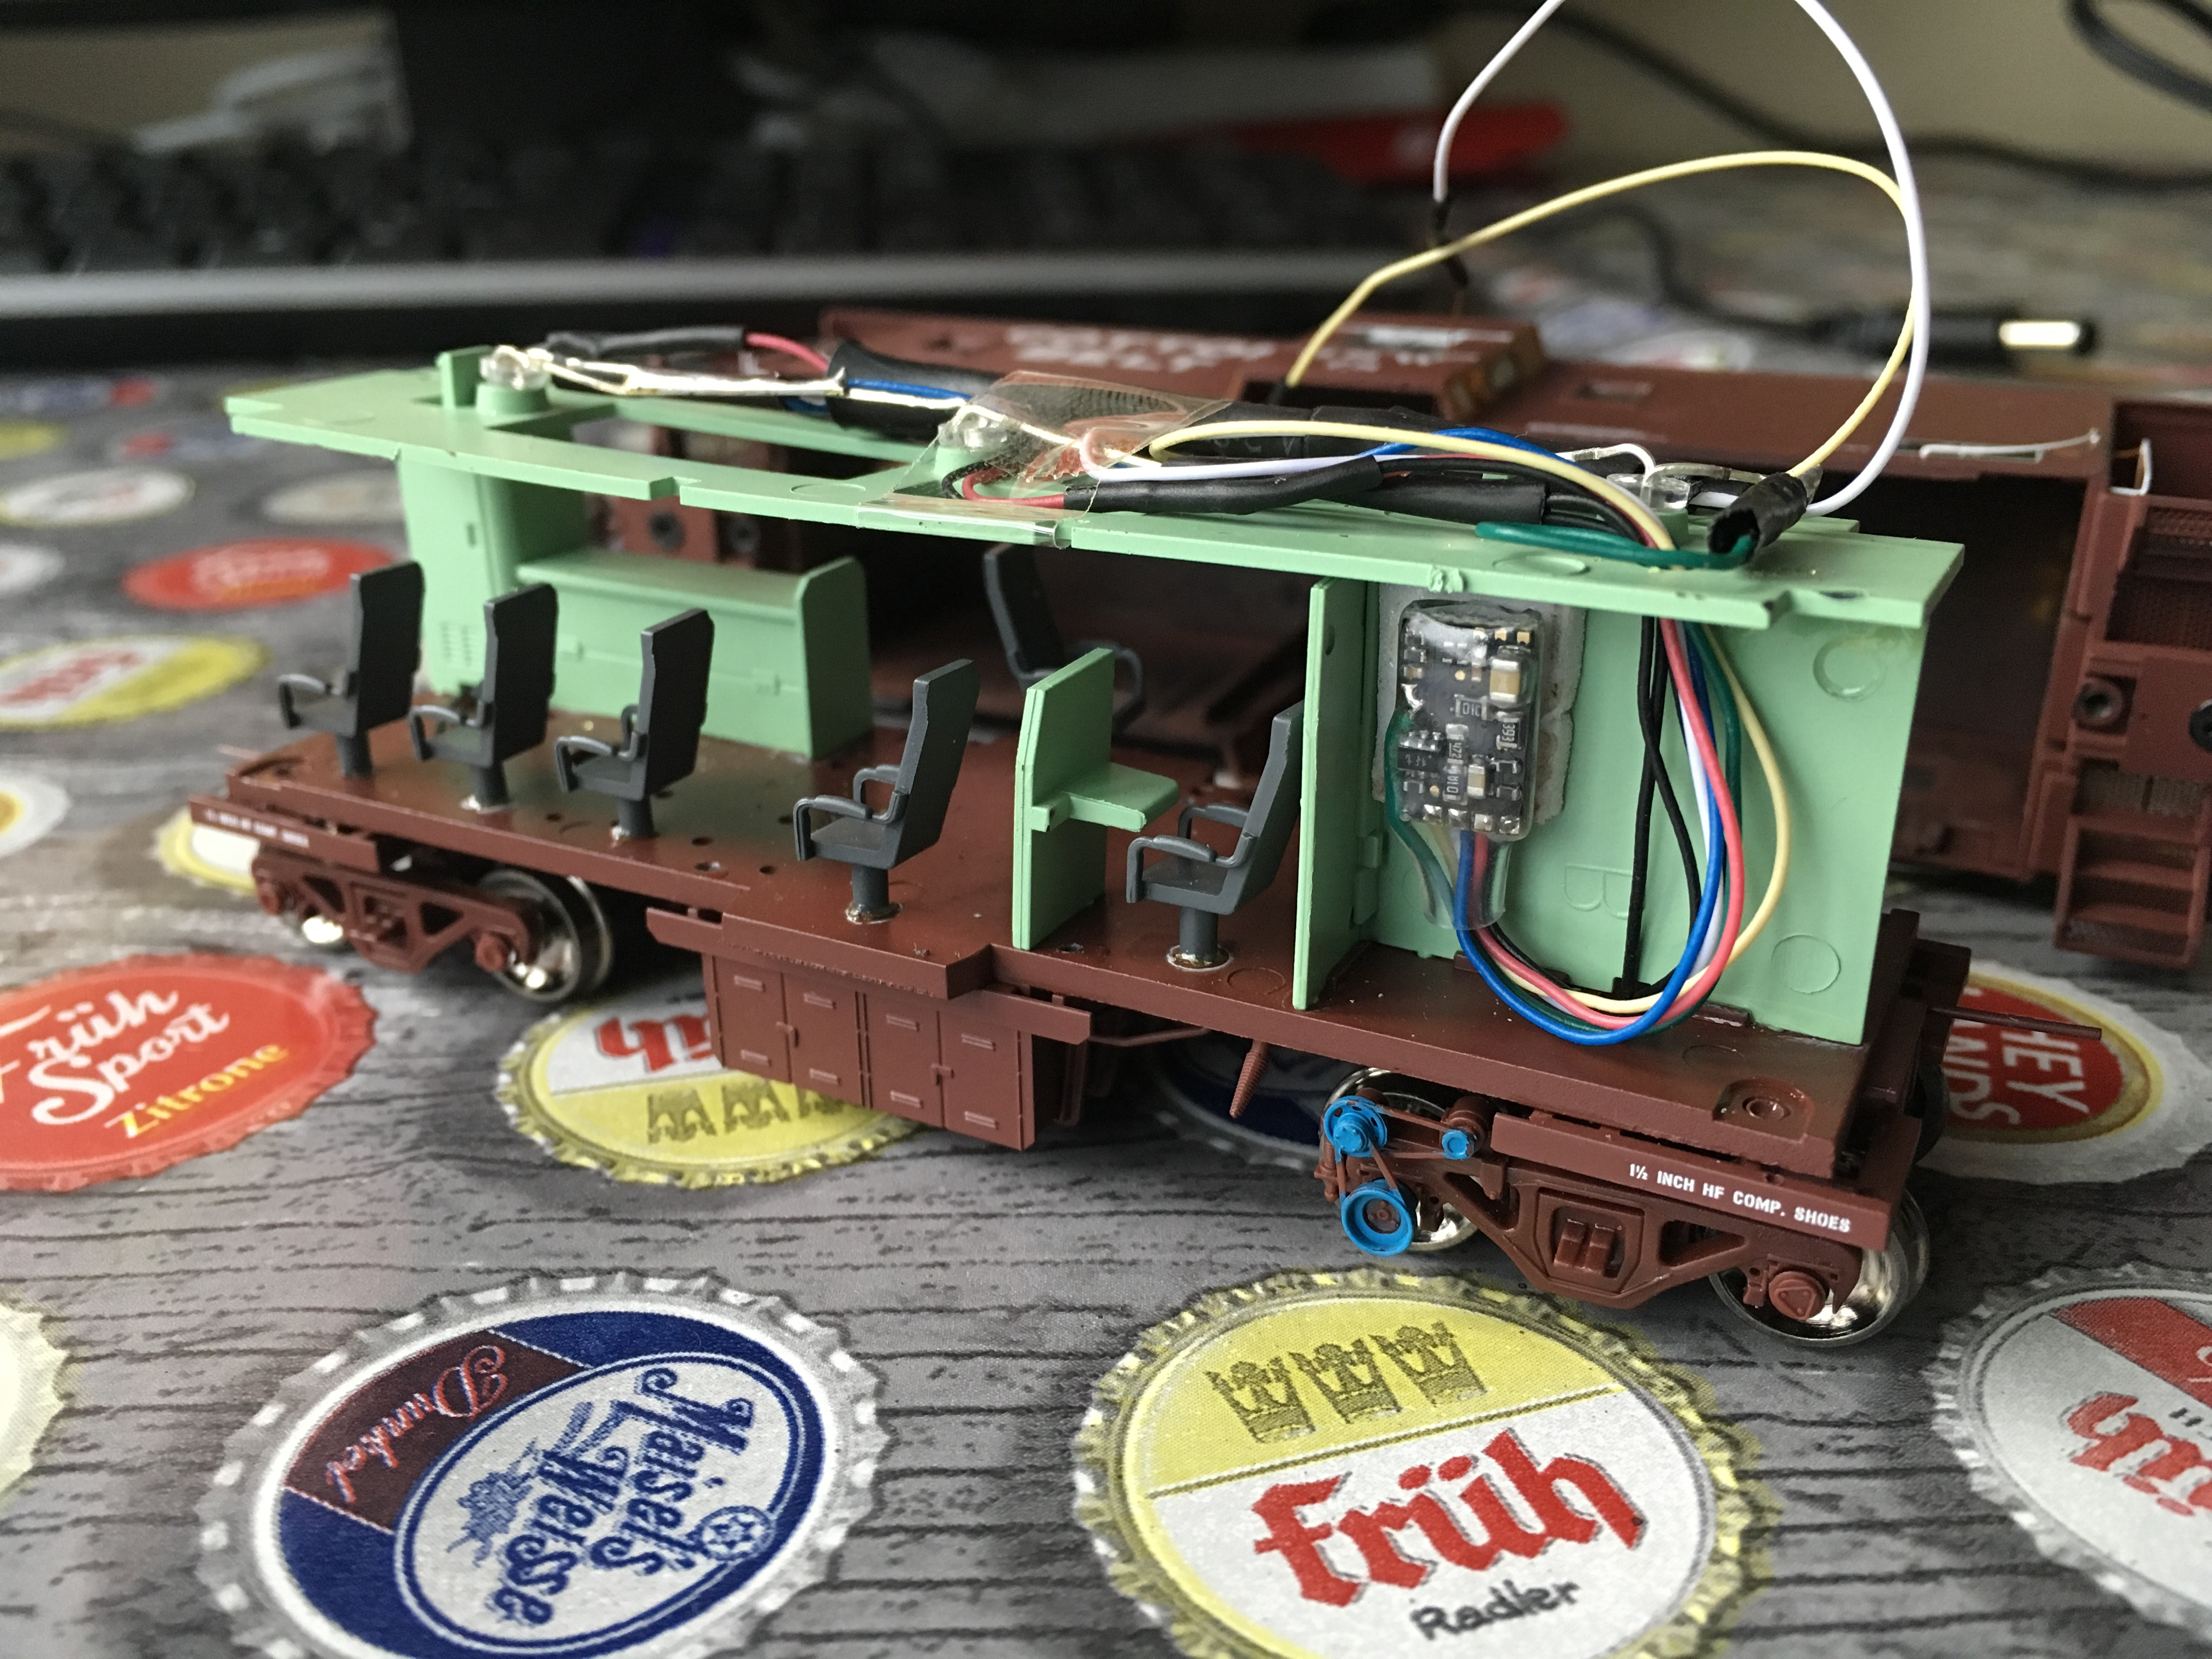 Installing a dcc function decoder (Digikeijs DR80015) in an Athearn Genisis caboose